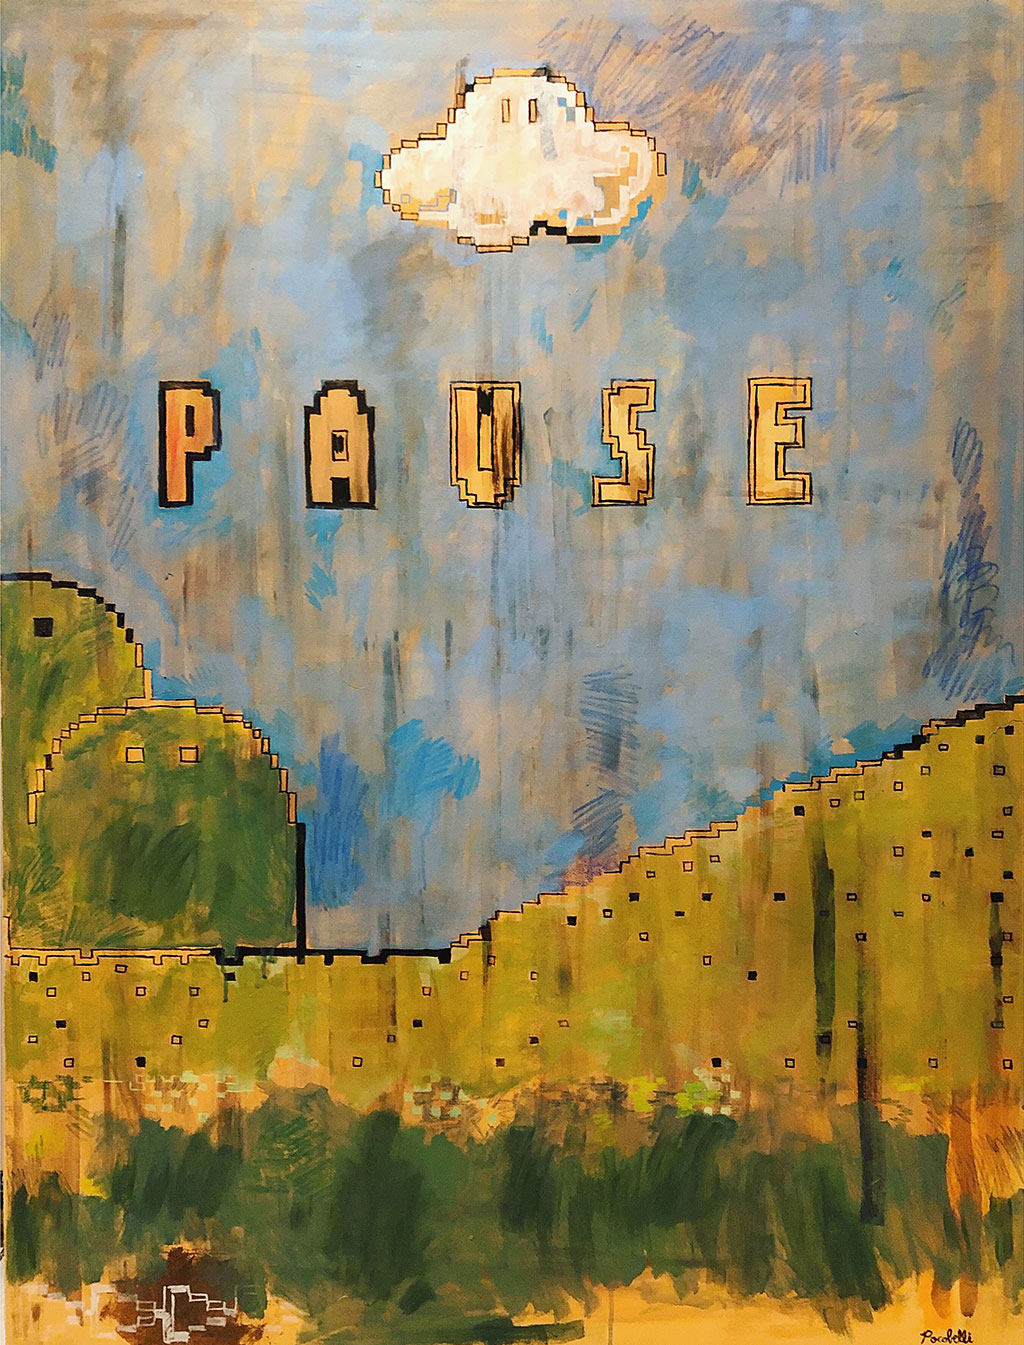 """Pause"", 100 cm x 130 cm, acrylic and mixed media on canvas."